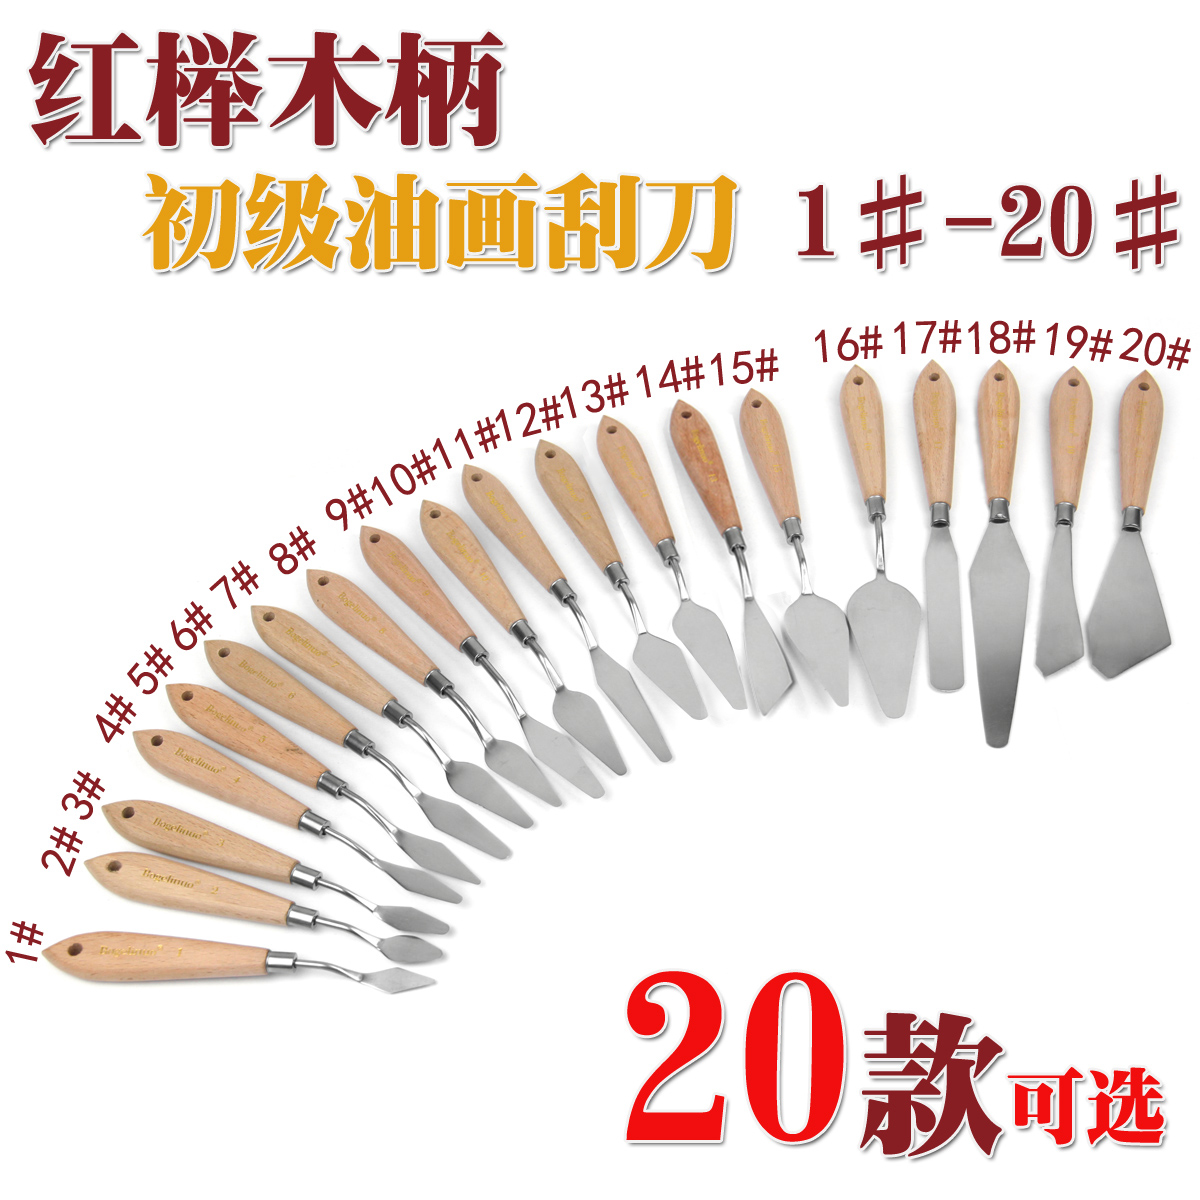 Lino borg red beech wood handle primary pick oil paint painting palette knife blade scraper a total of 20 models